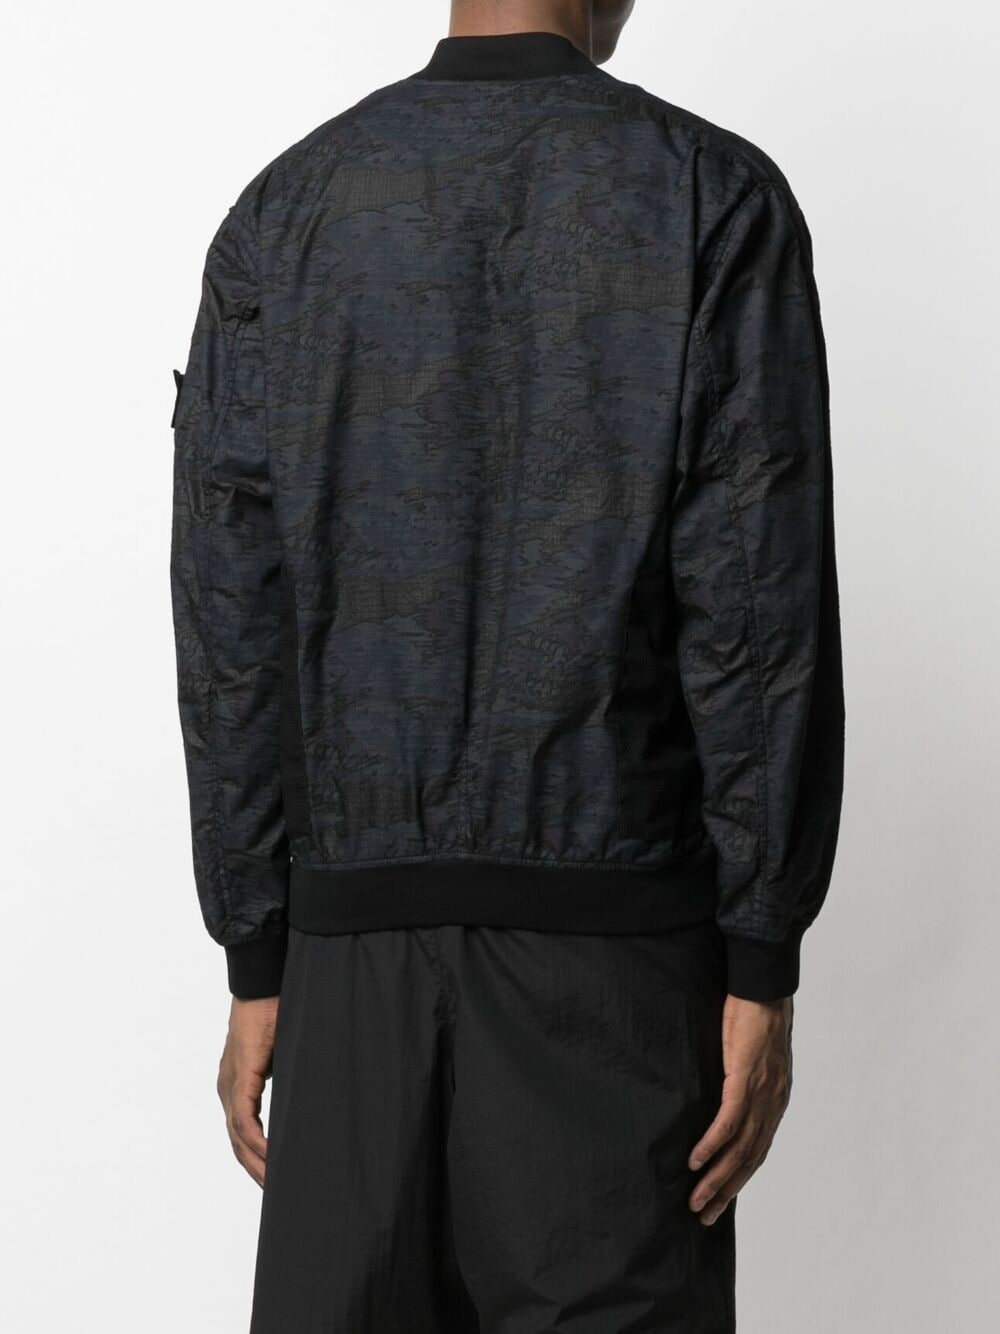 Stone Island Shadow Project mesh panelled bomber jacket man black STONE ISLAND SHADOW PROJECT | Jackets | 741940403V0029